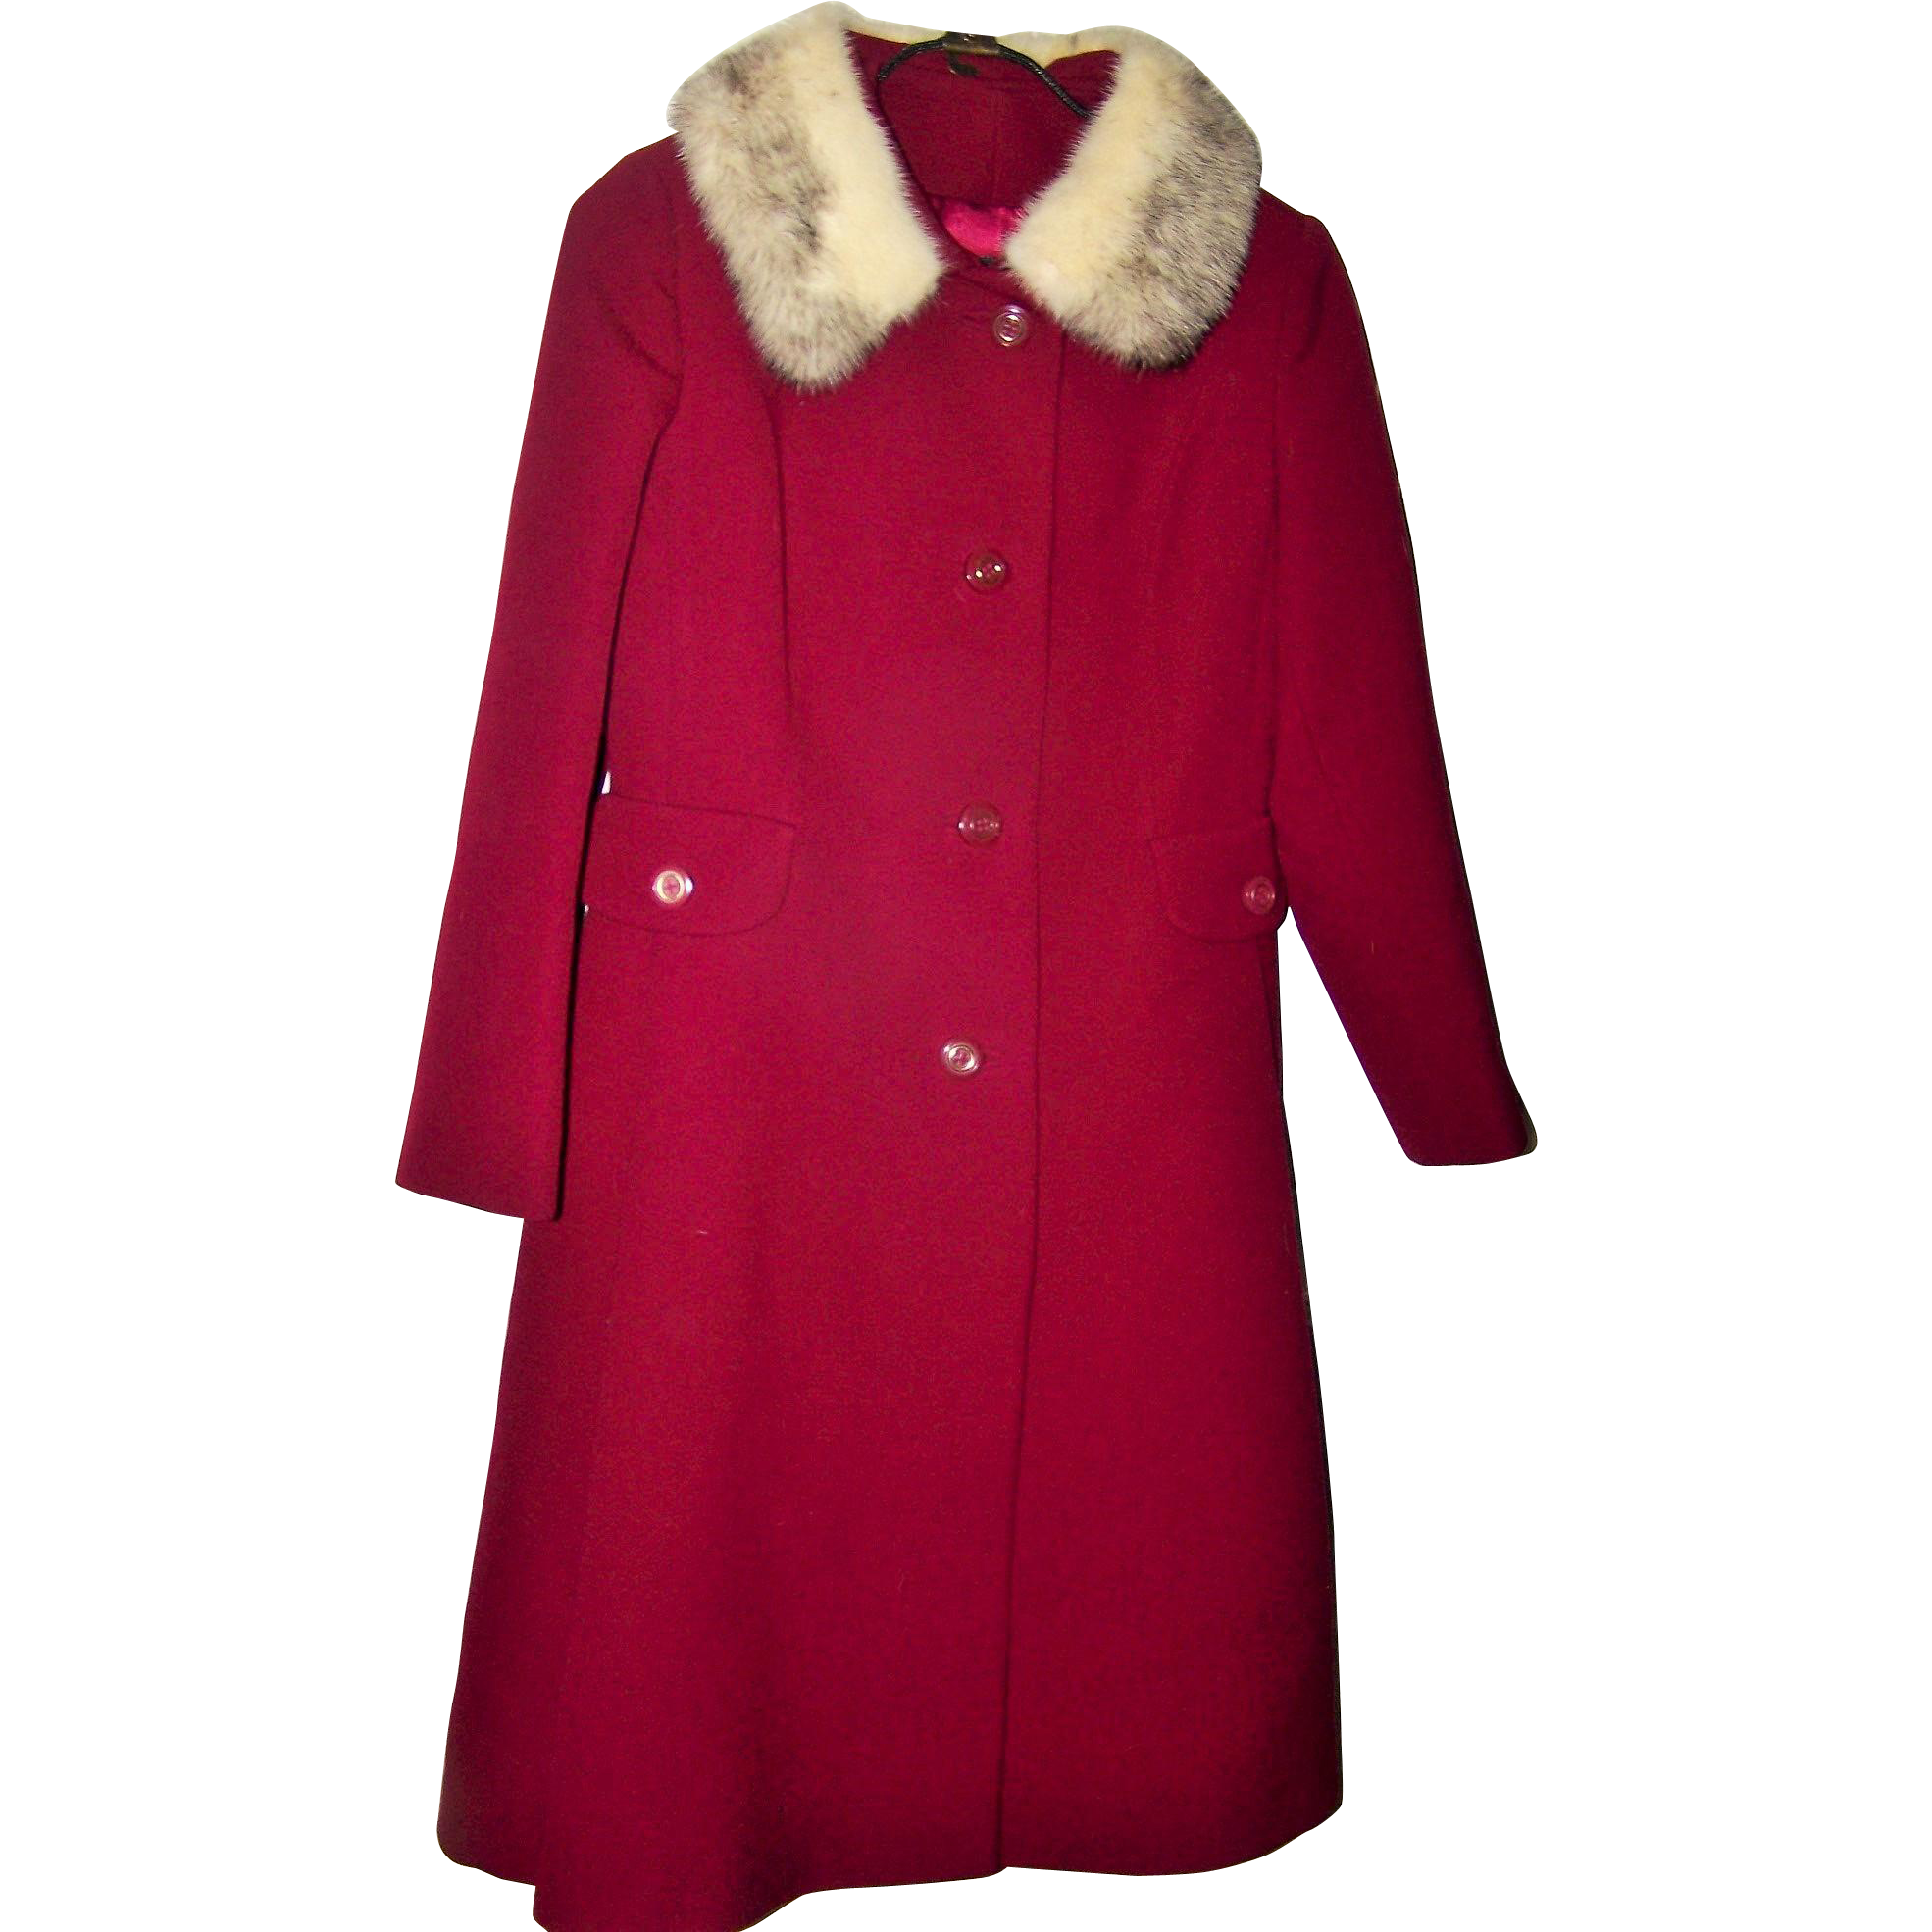 Pure Virgin Wool Made In Canada Ladies Vintage Union Label Fashion Coat Real Fur Collar